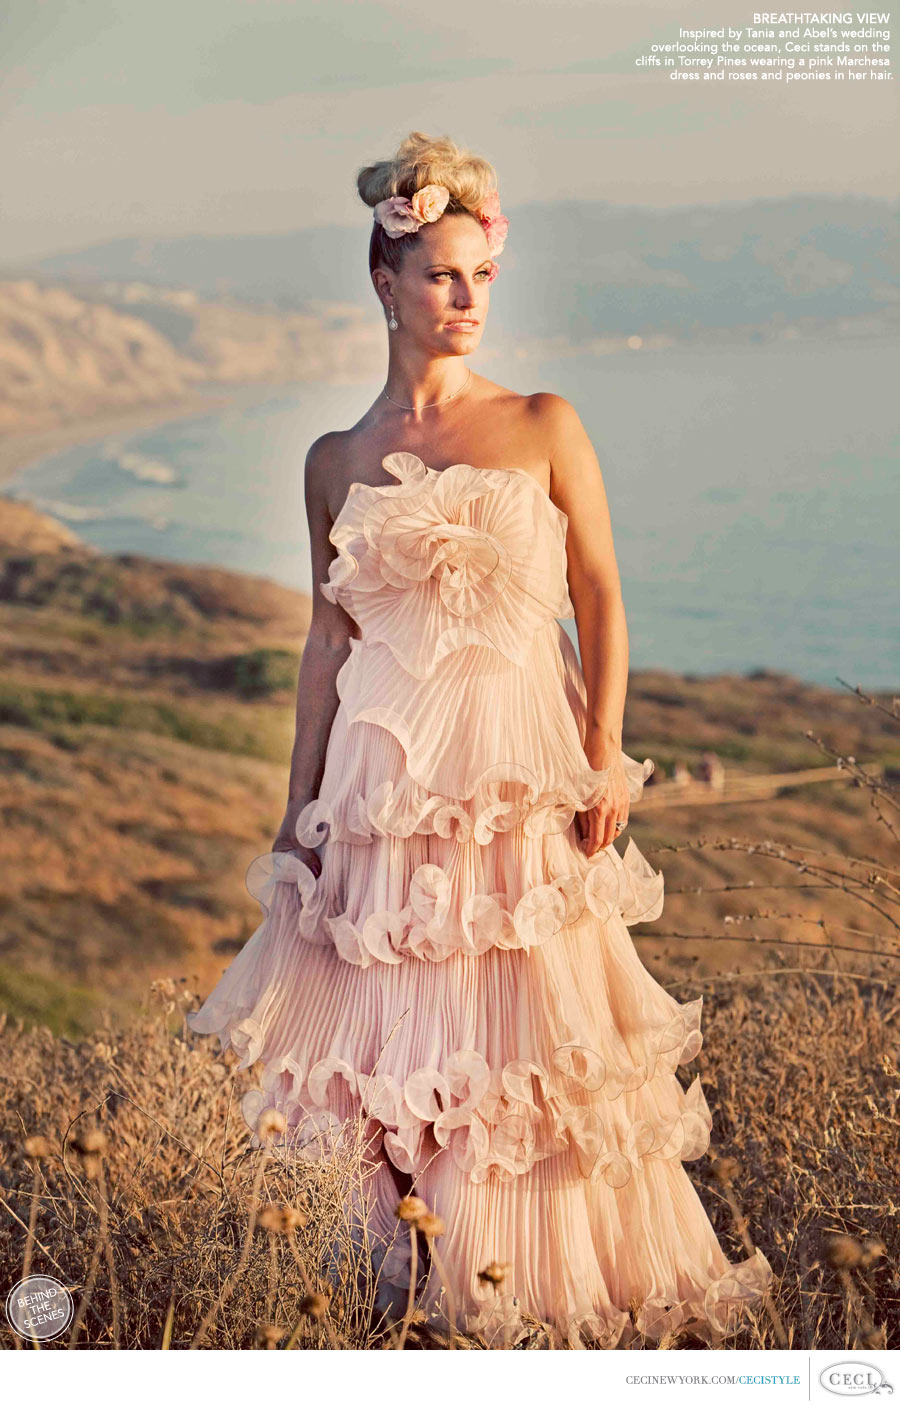 Ceci Johnson of Ceci New York - BREATHTAKING VIEW: Inspired by Tania and Abel's wedding overlooking the ocean, Ceci stands on the cliffs in Torrey Pines wearing a pink Marchesa dress and roses and peonies in her hair.